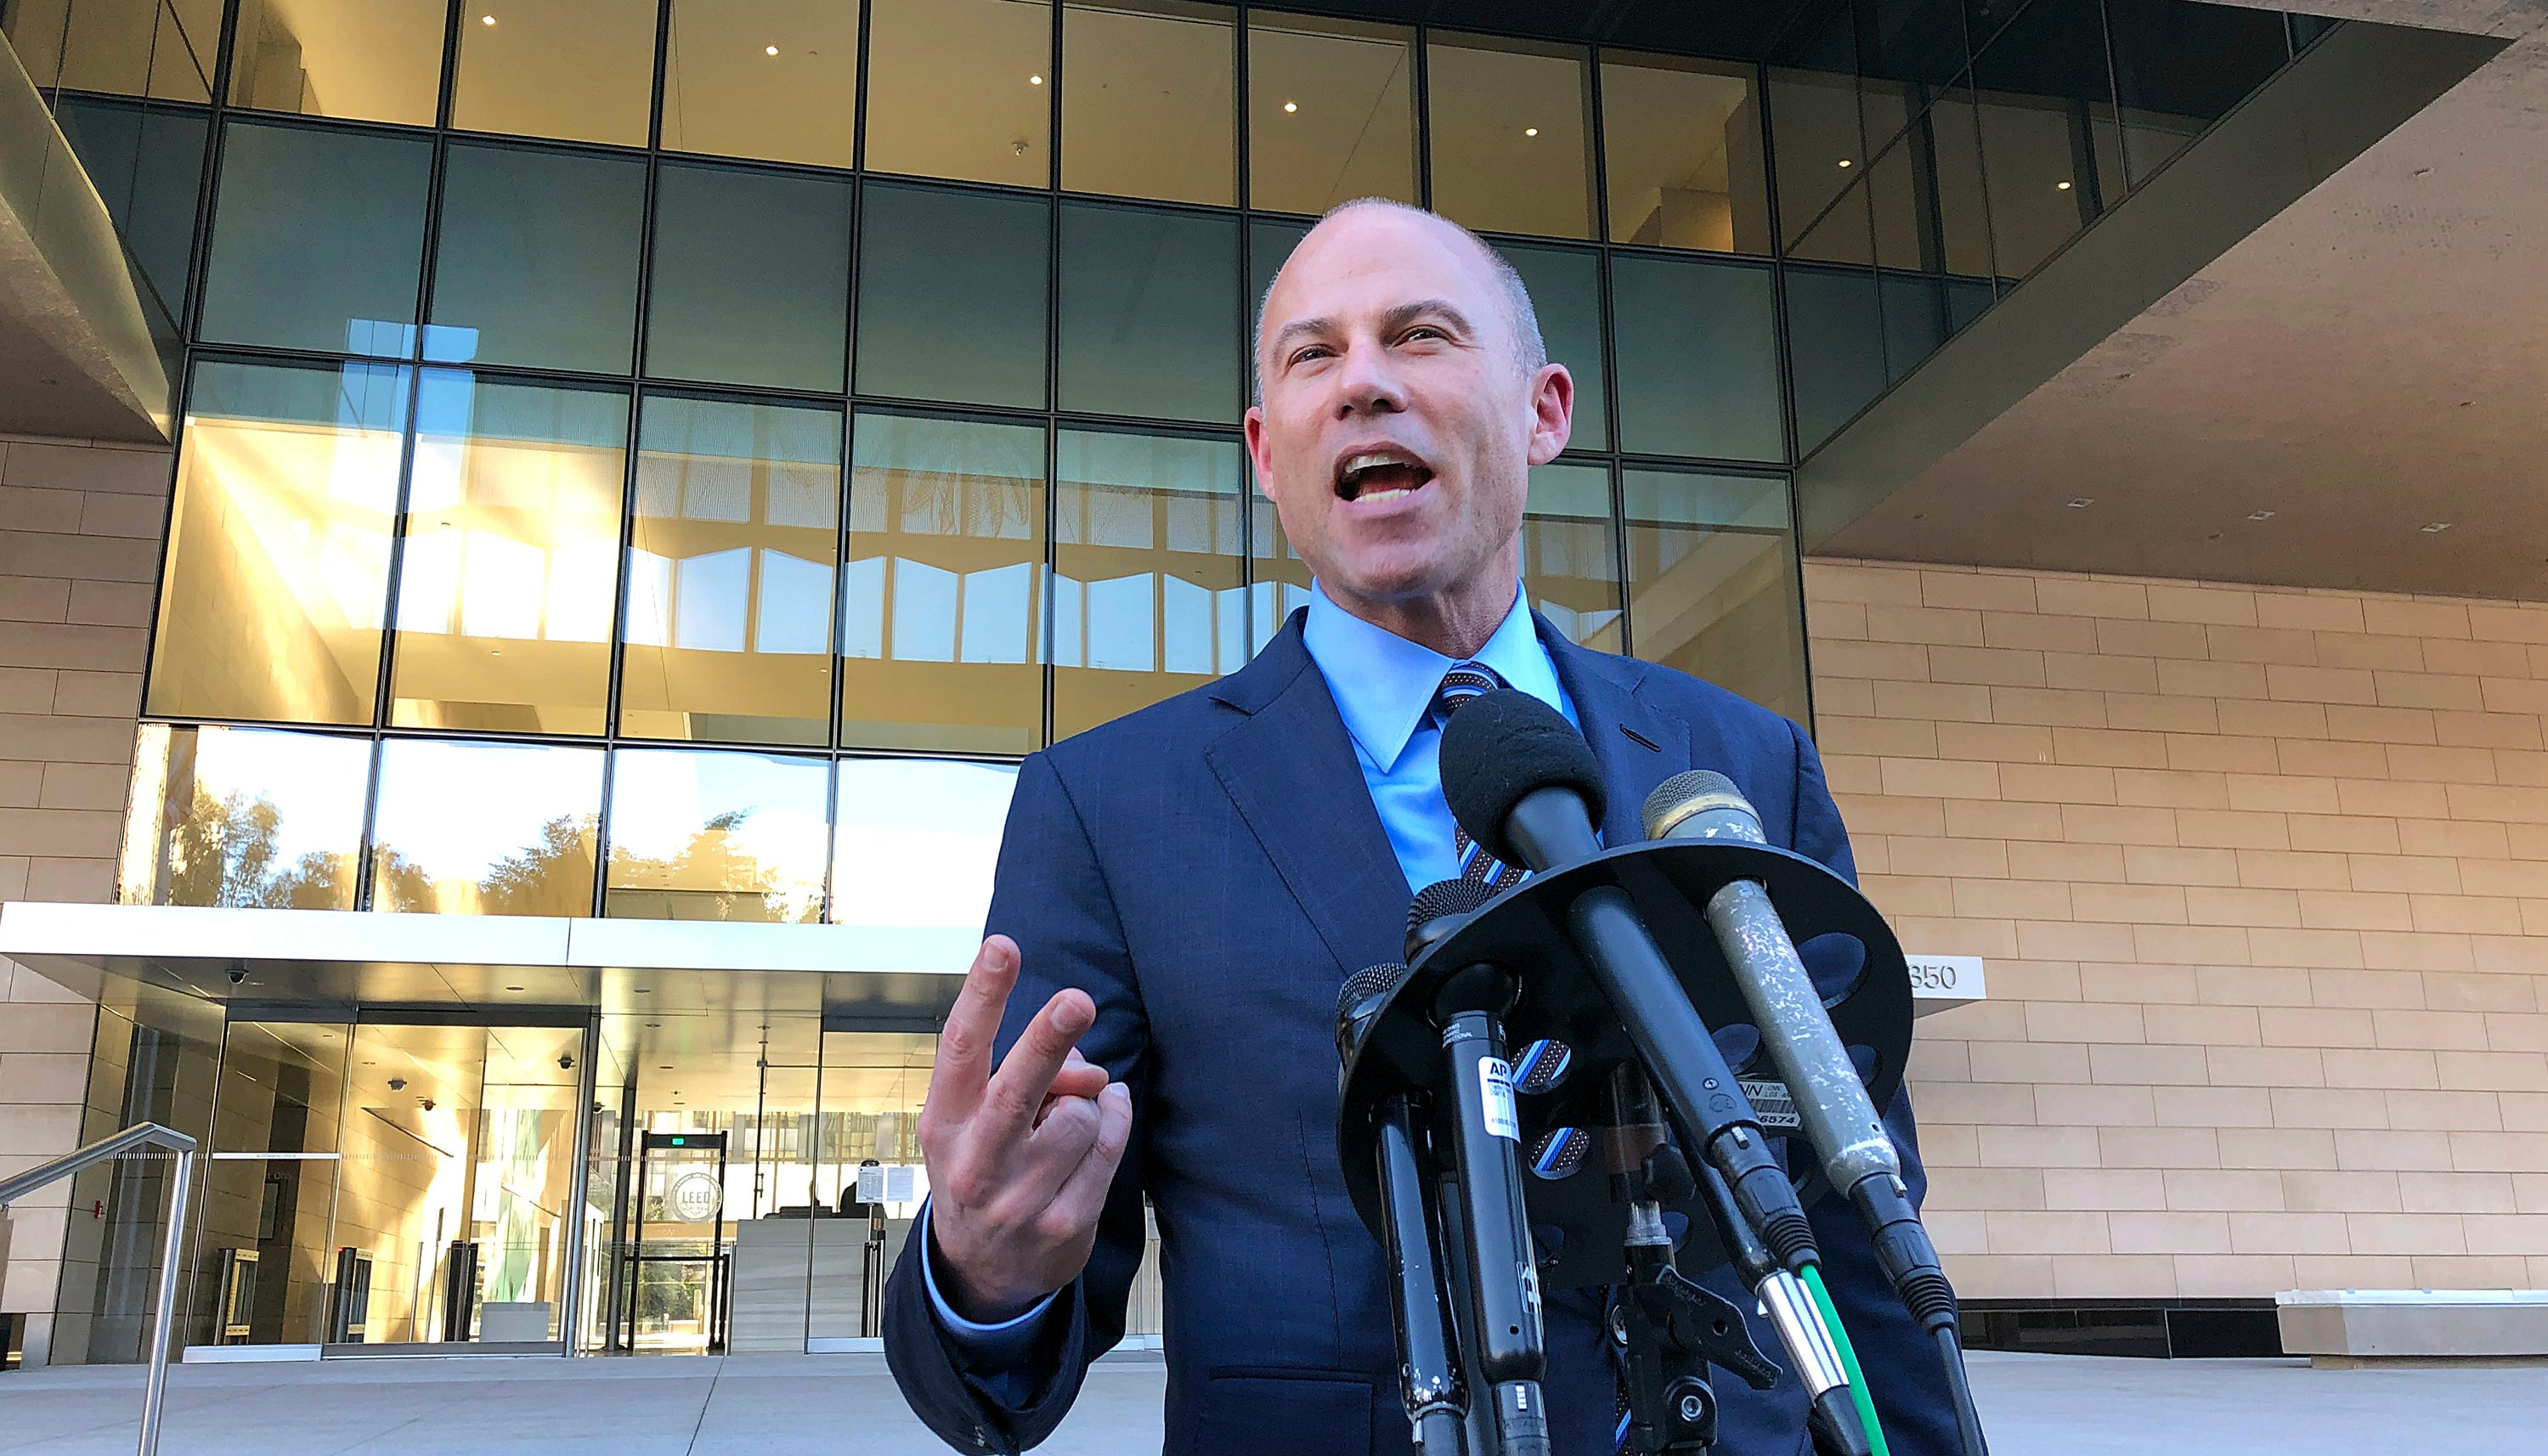 Michael Avenatti, lawyer for porn actress Stormy Daniels, speaks to reporters outside federal court in Los Angeles on Dec. 3, 2018.